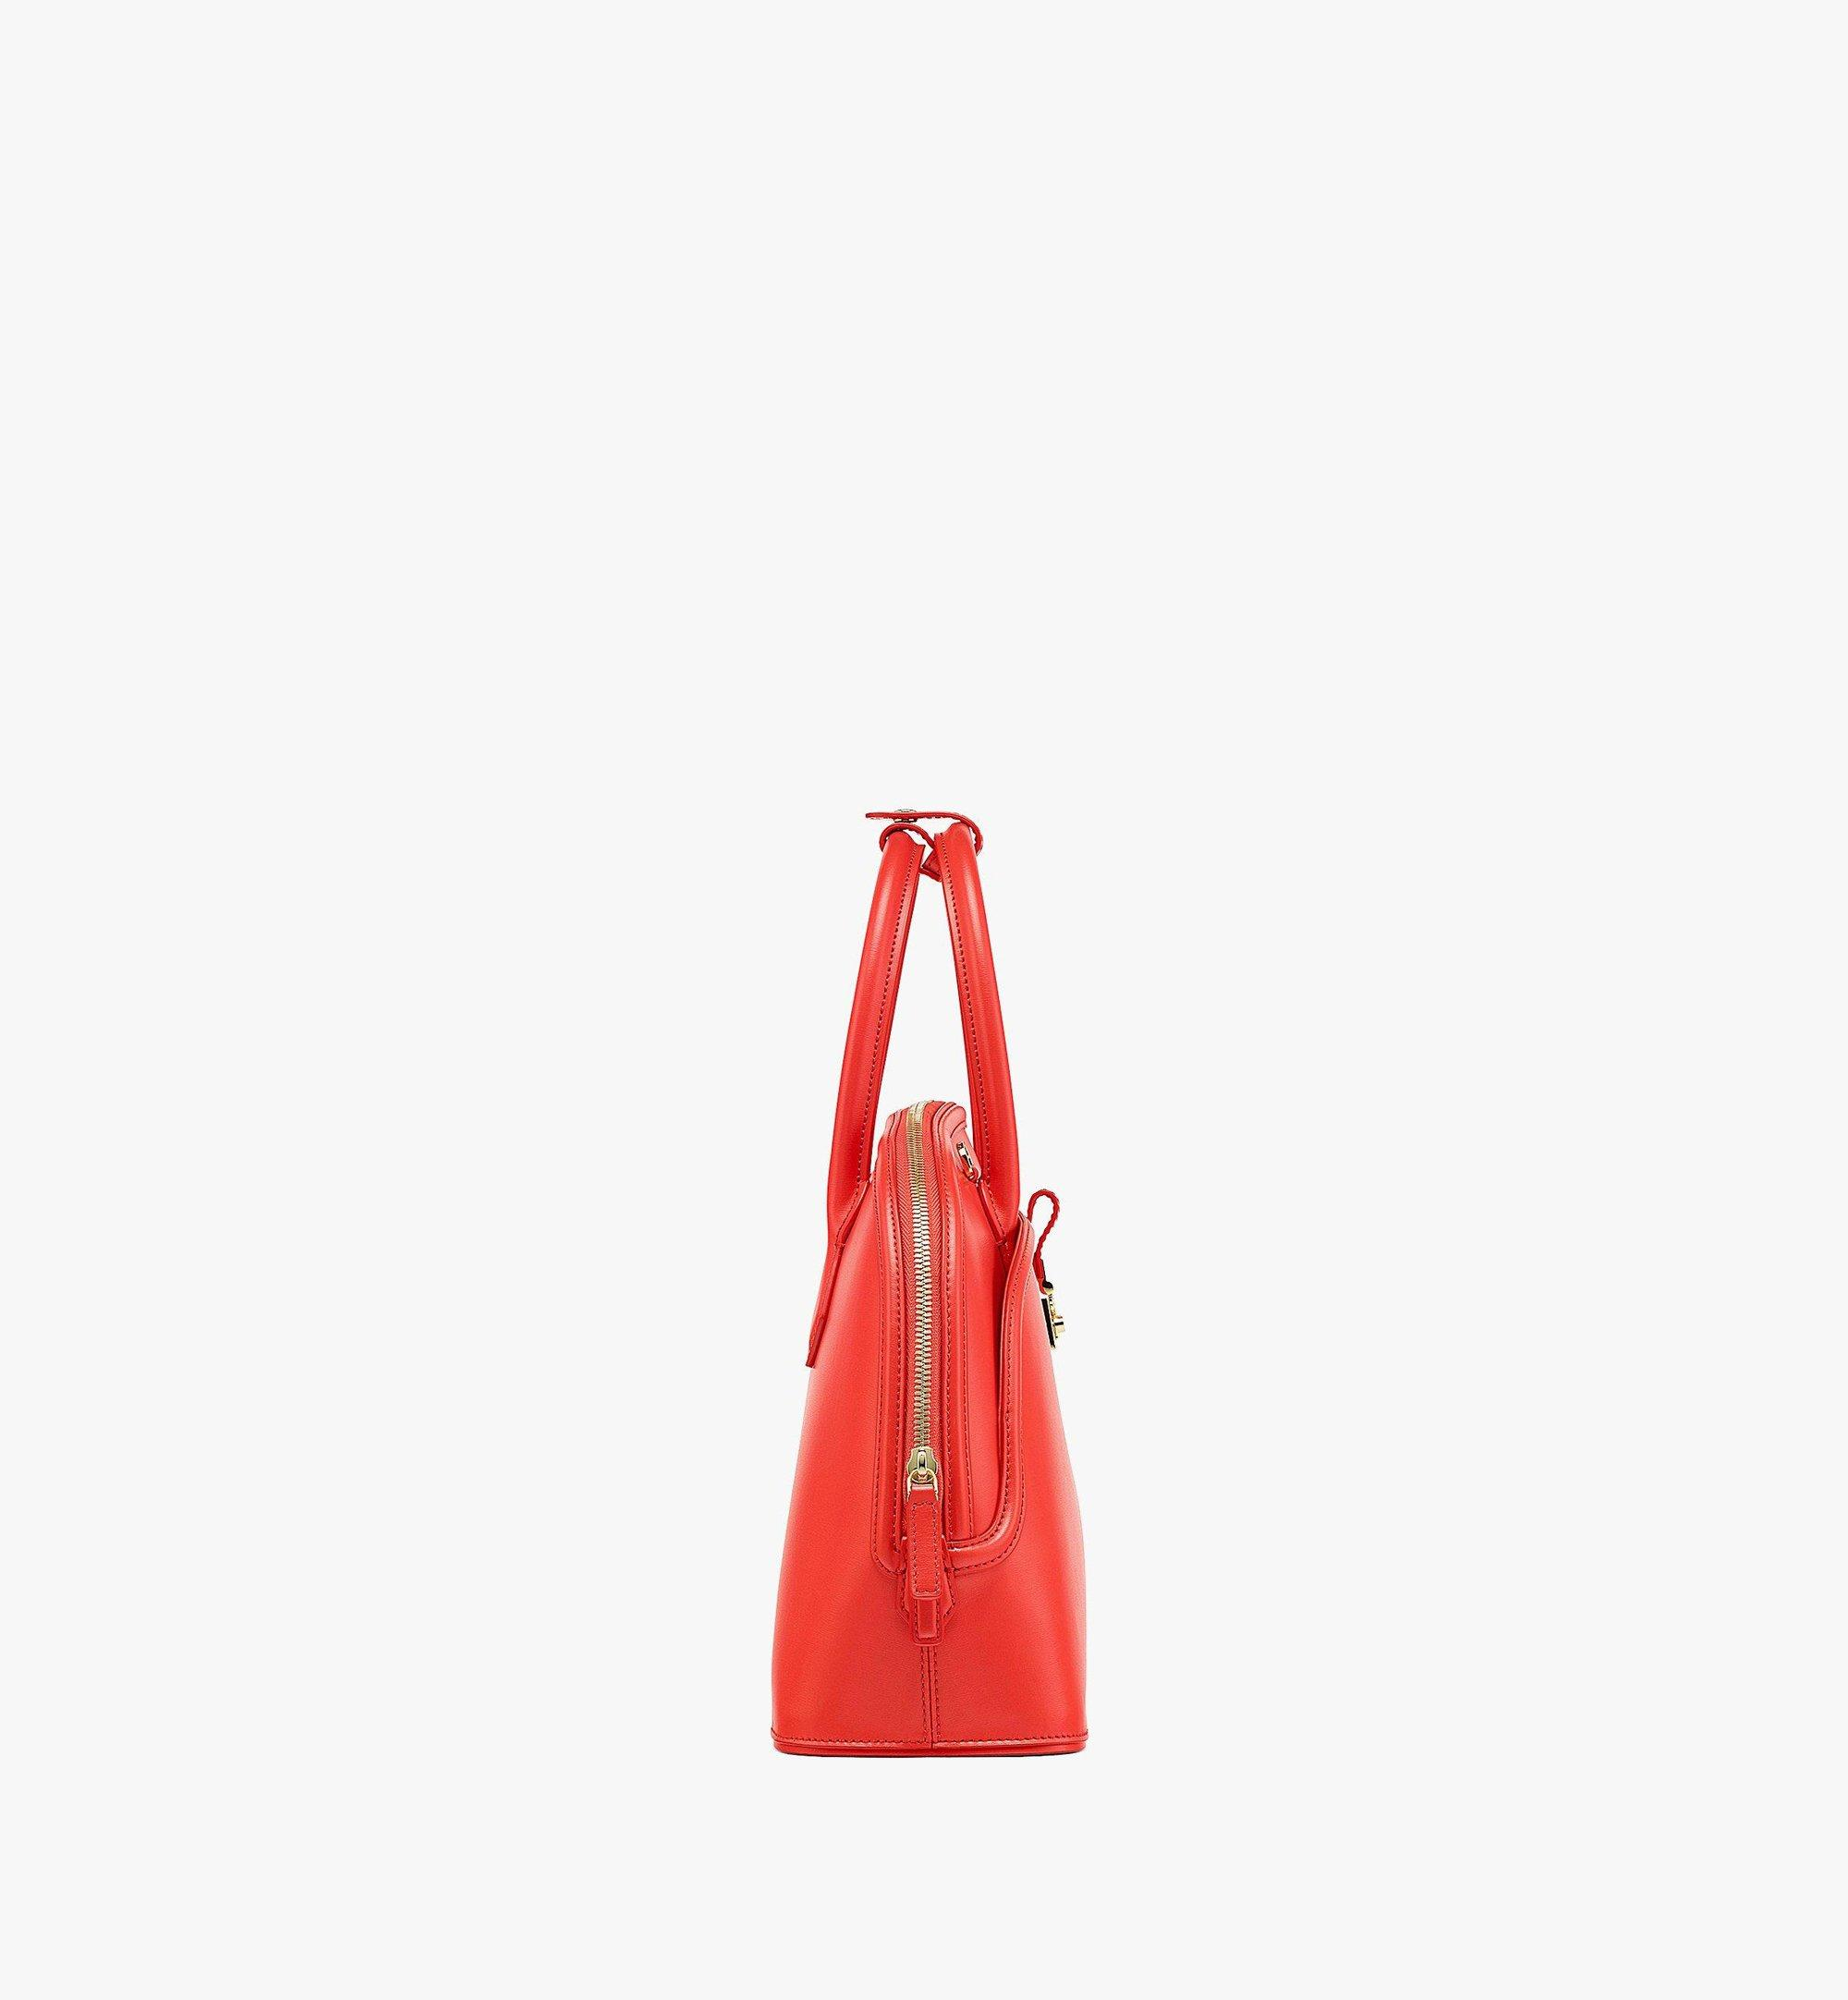 MCM Anna Tote in Spanish Leather Red MWTBSNN03R8001 Alternate View 1